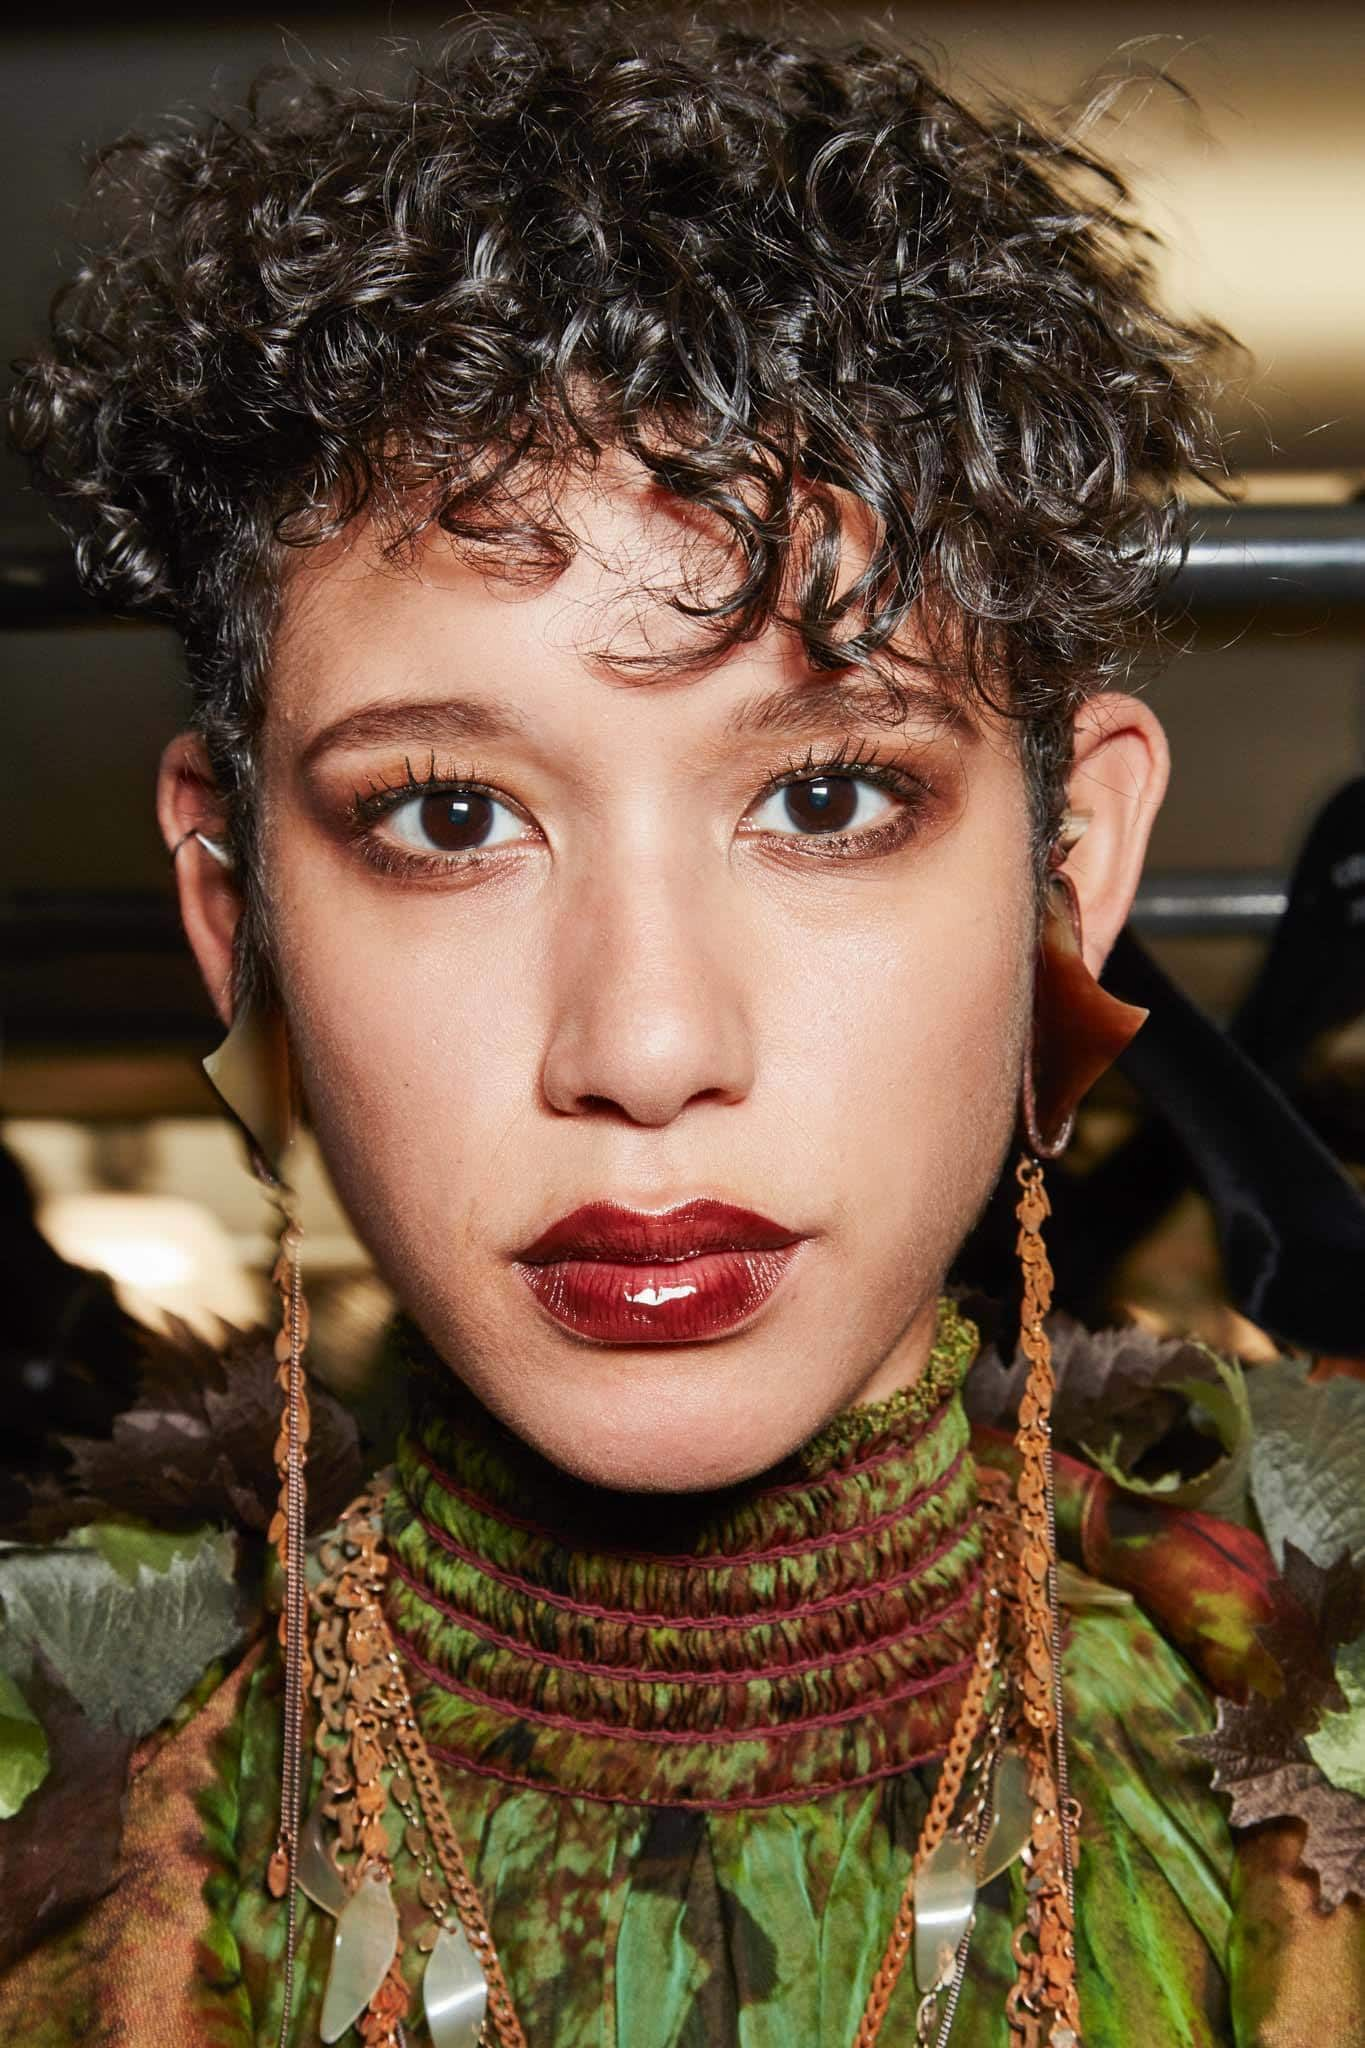 close up shot of woman with curly black pixie cut backstage at a show, wearing red lipstick and drop earrings